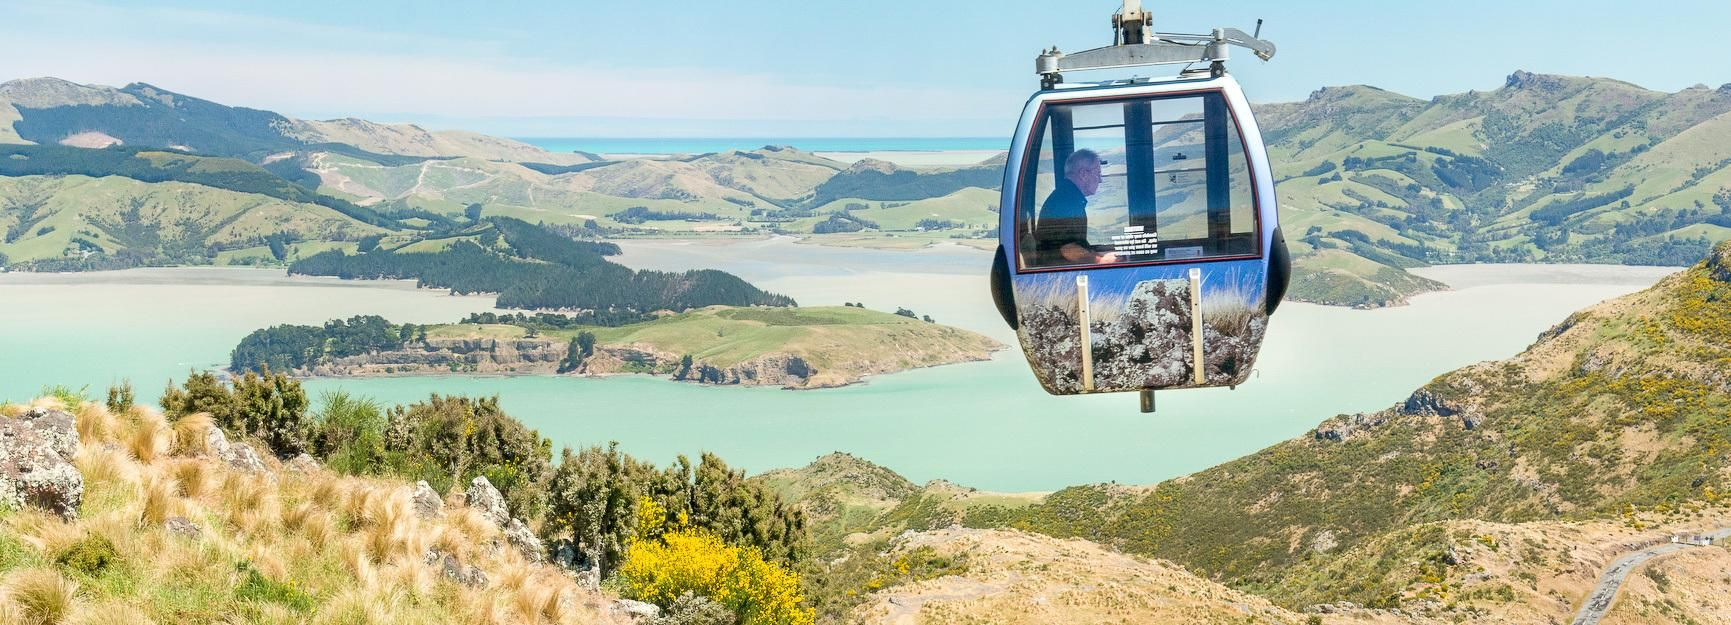 Christchurch Gondola and Tram City Tour Combo